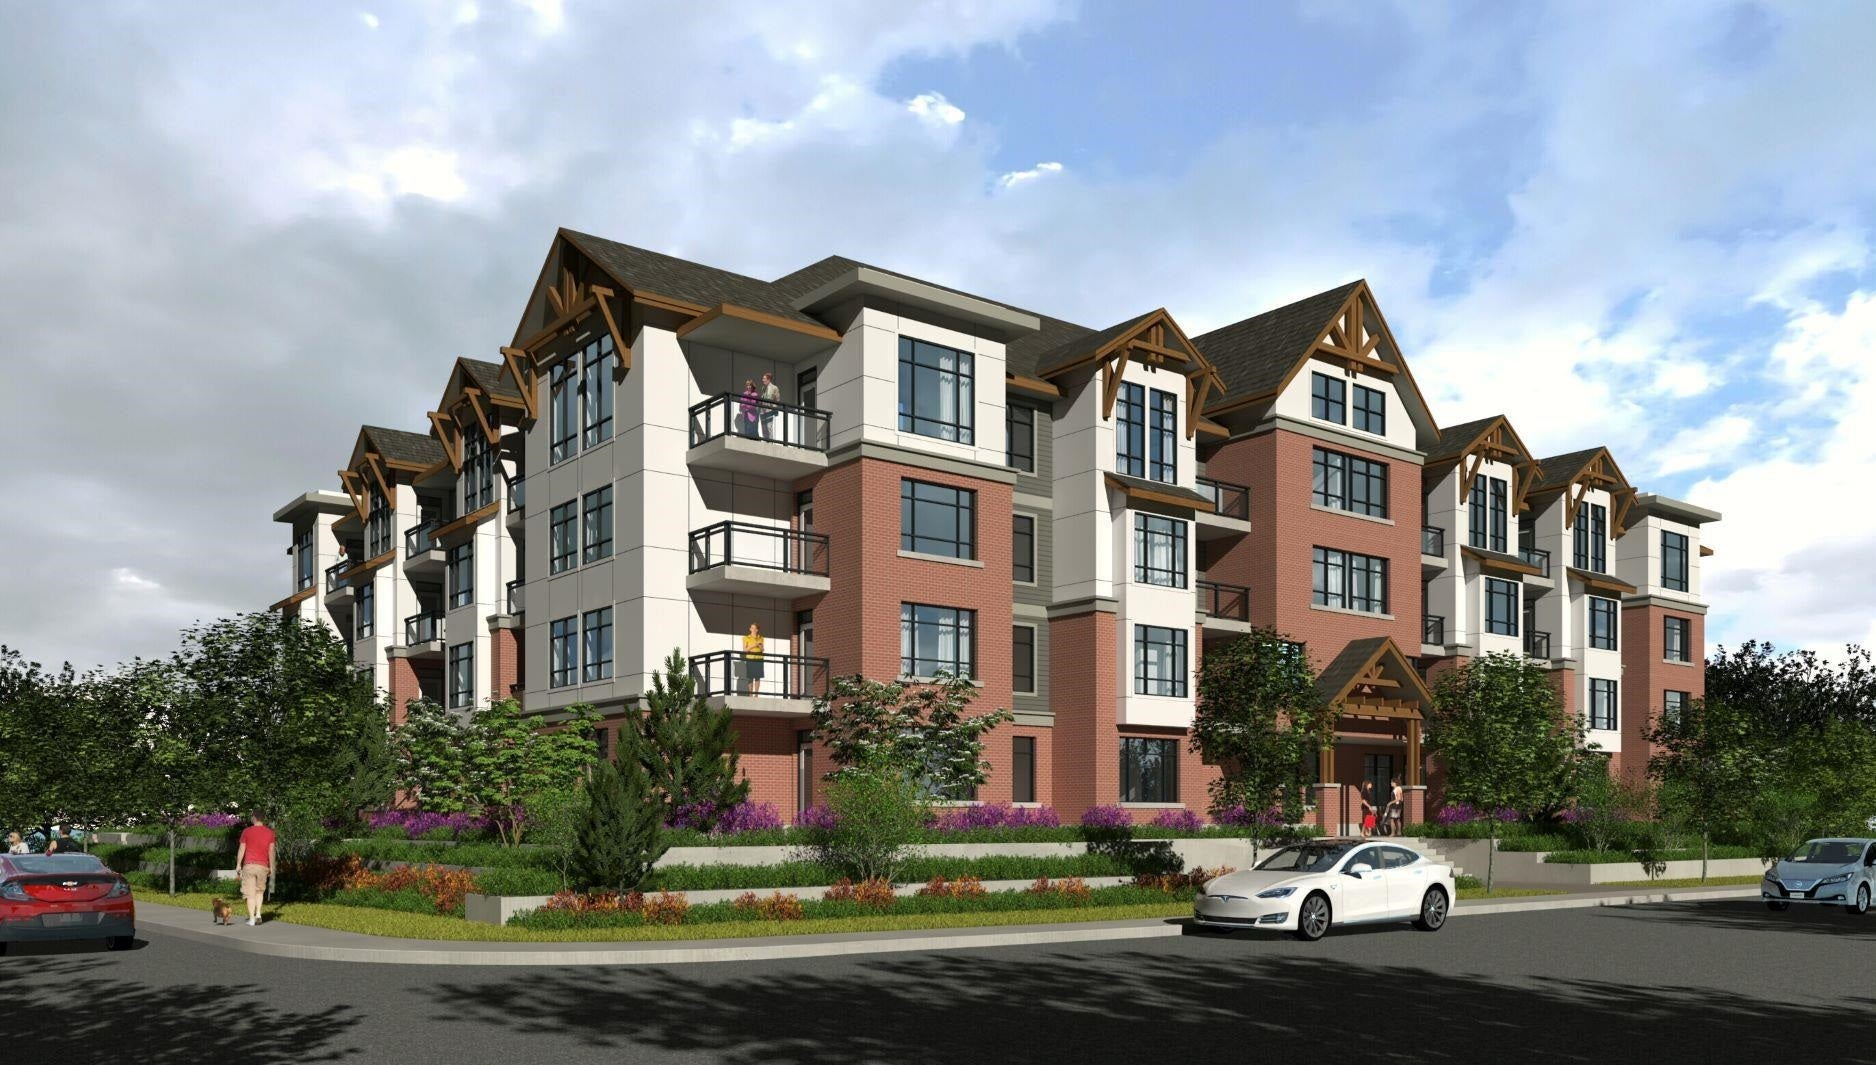 316 19945 BRYDON CRESCENT - Langley City Apartment/Condo for sale, 2 Bedrooms (R2620603) - #1